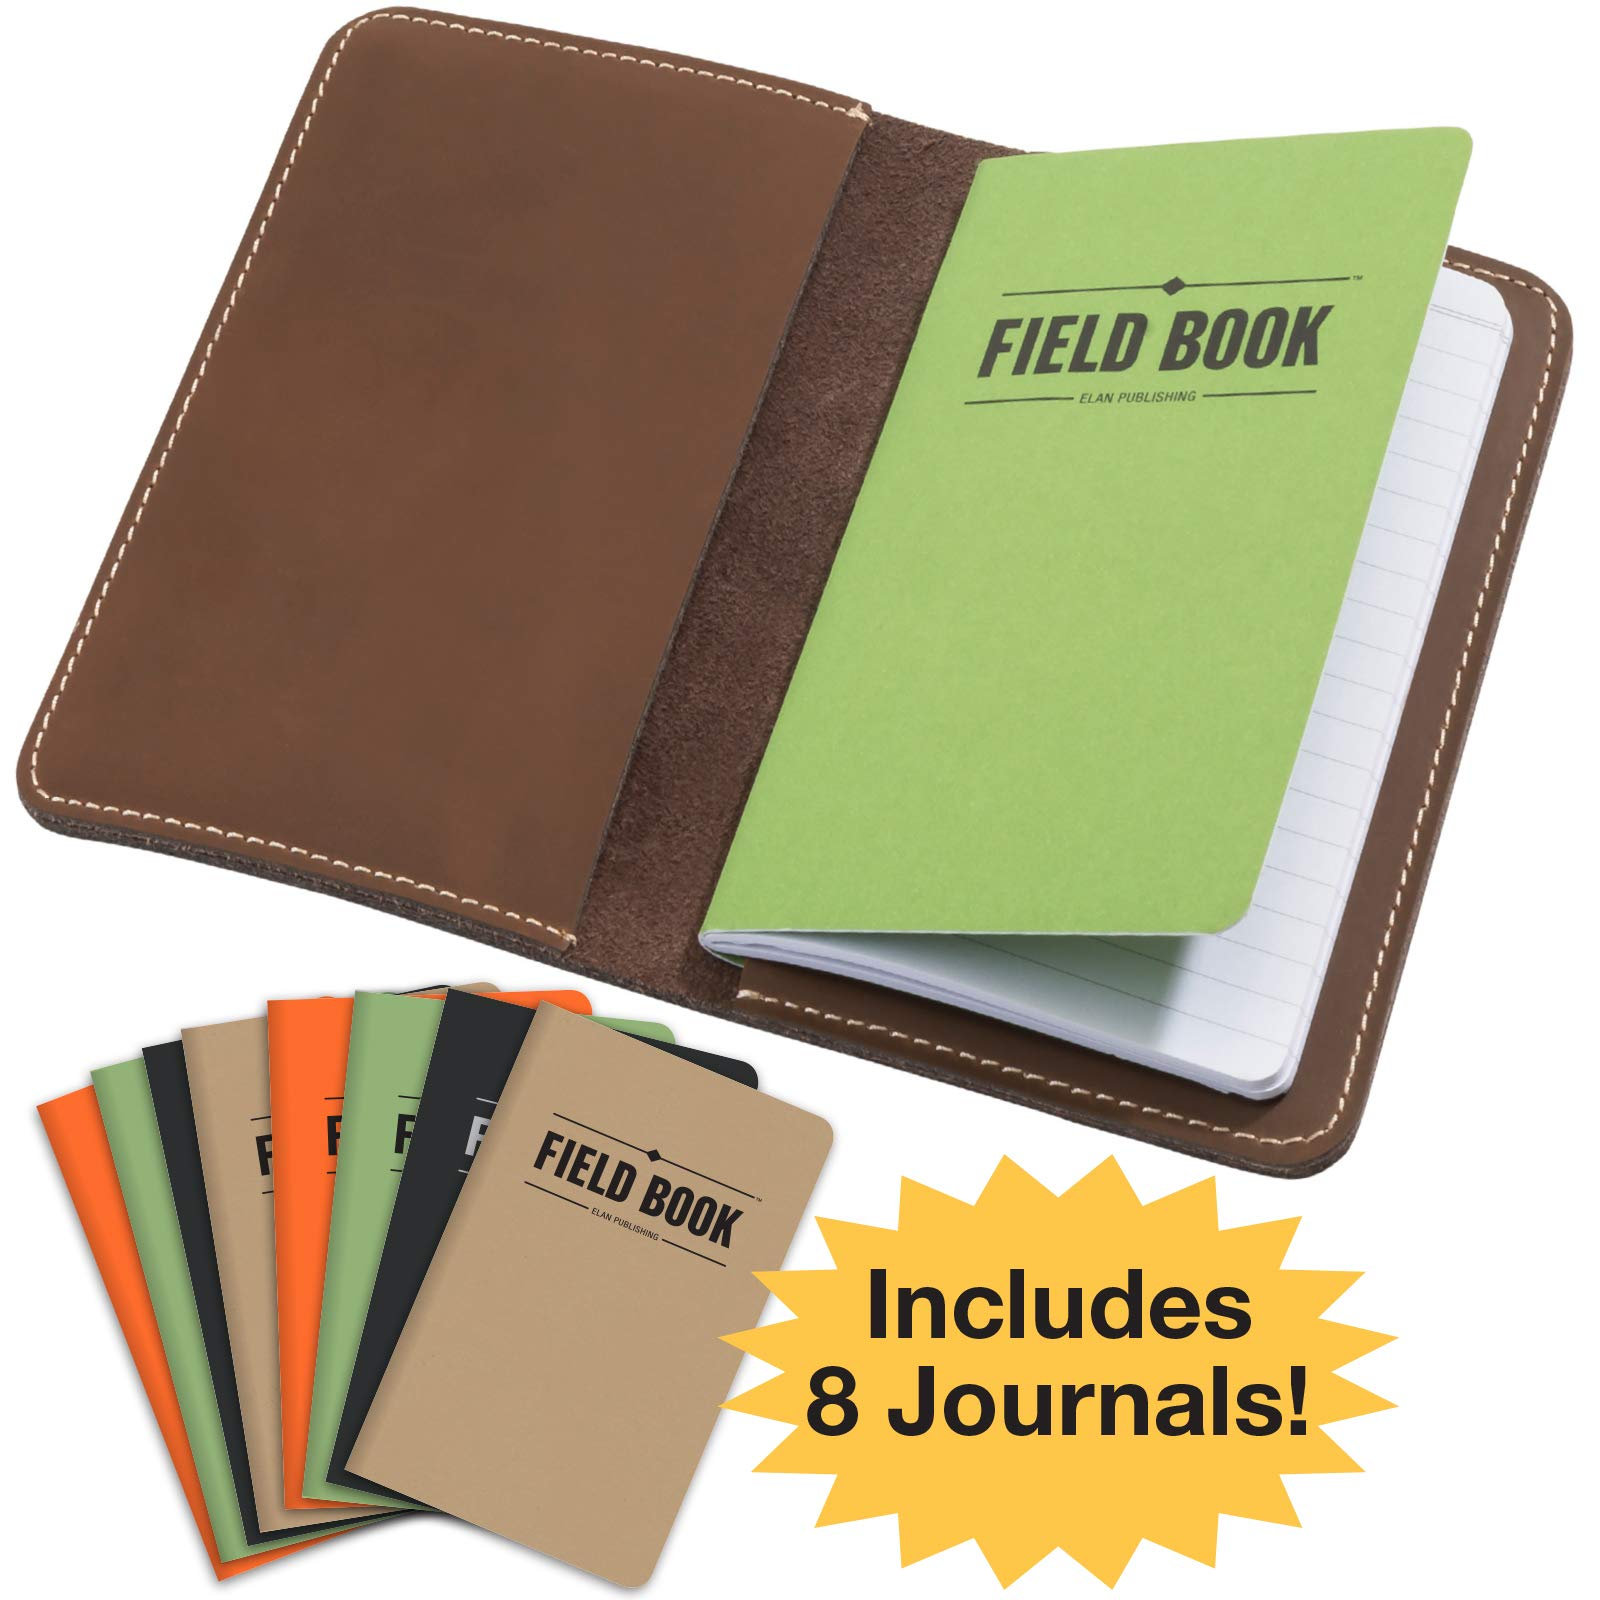 Handcrafted Stitched Leather Journal Notebook Cover with Inside Pocket: Includes 8 Bonus Refillable Field Note Book Journals/Compatible with Field Notes and Moleskine Cahier Notebook (3.5''x5.5'')